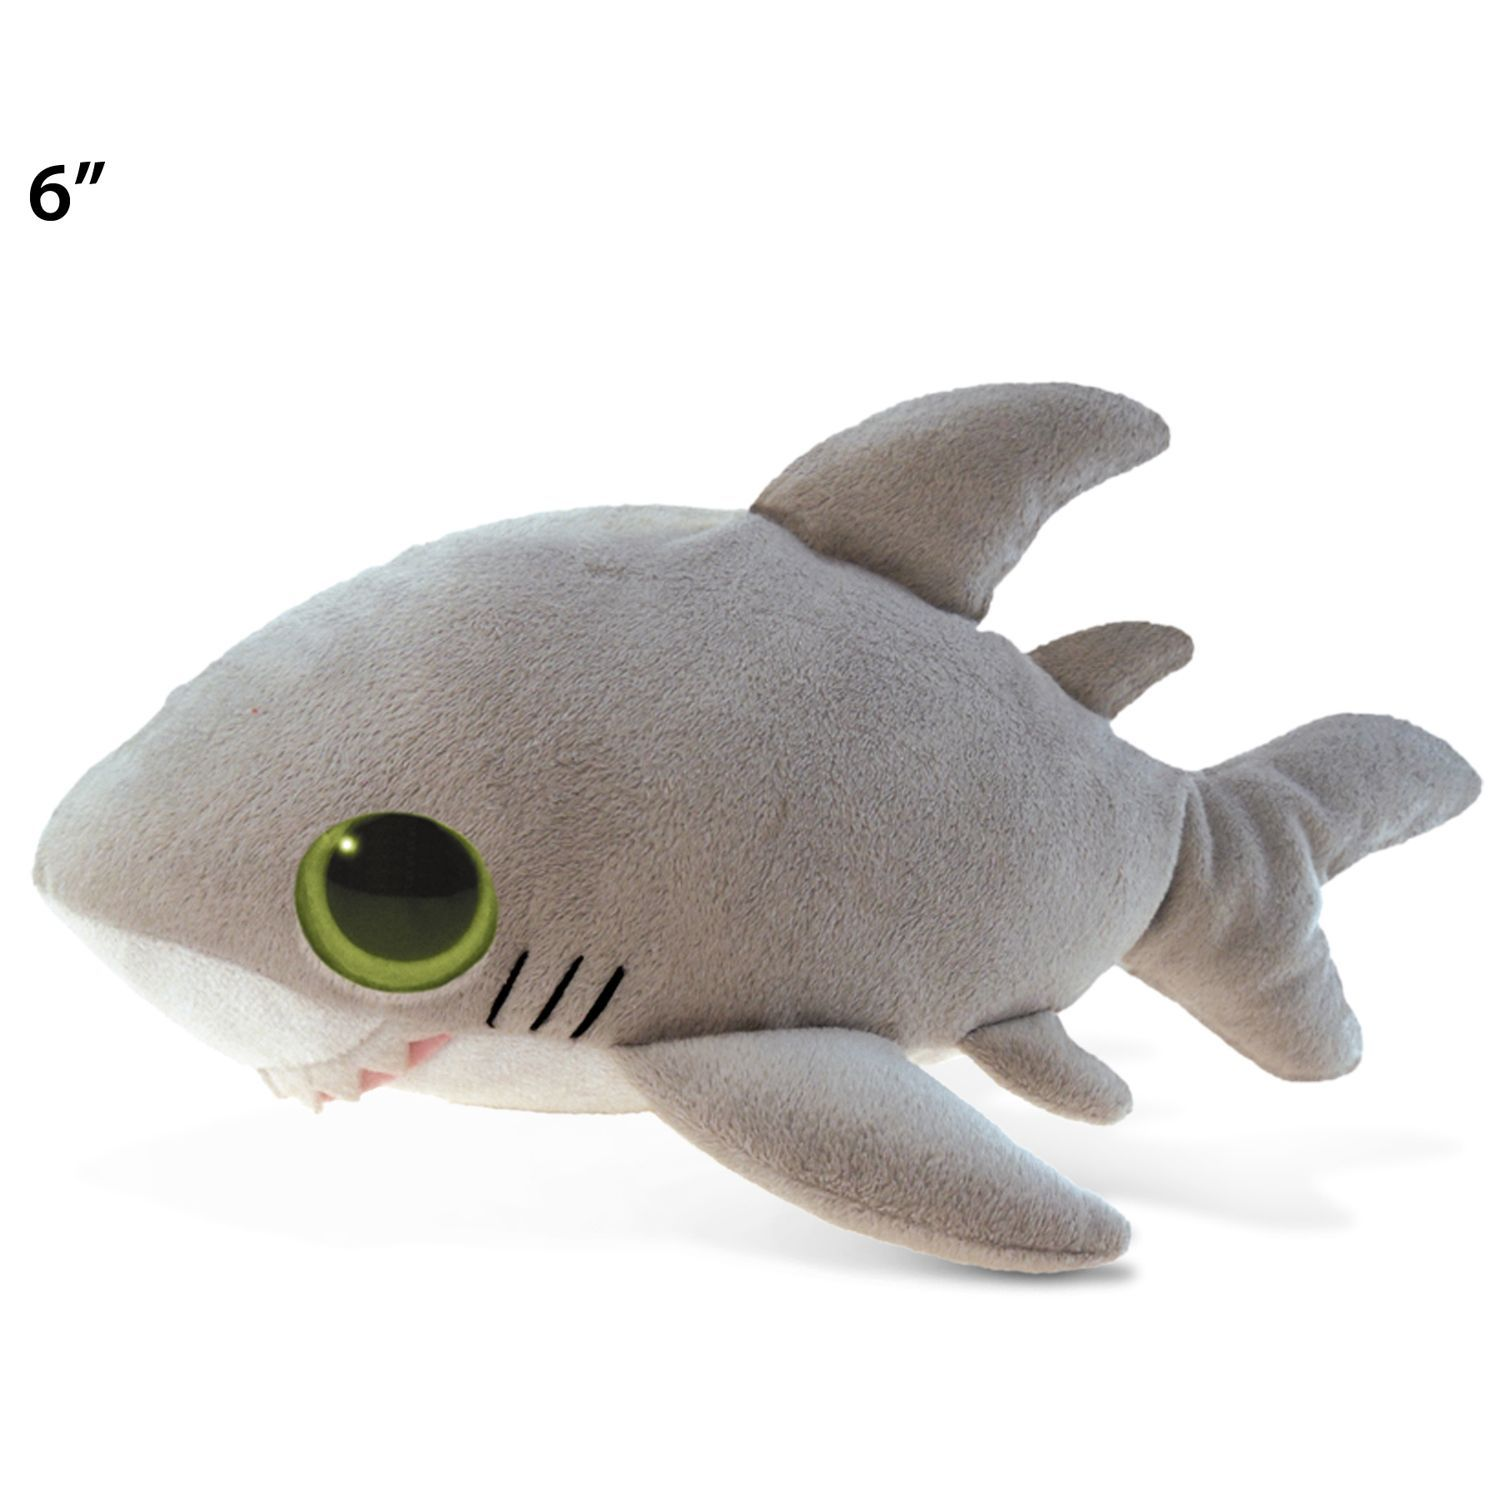 "Puzzled Big Eye 6inch Plush Shark (Product size 6""L x 3"